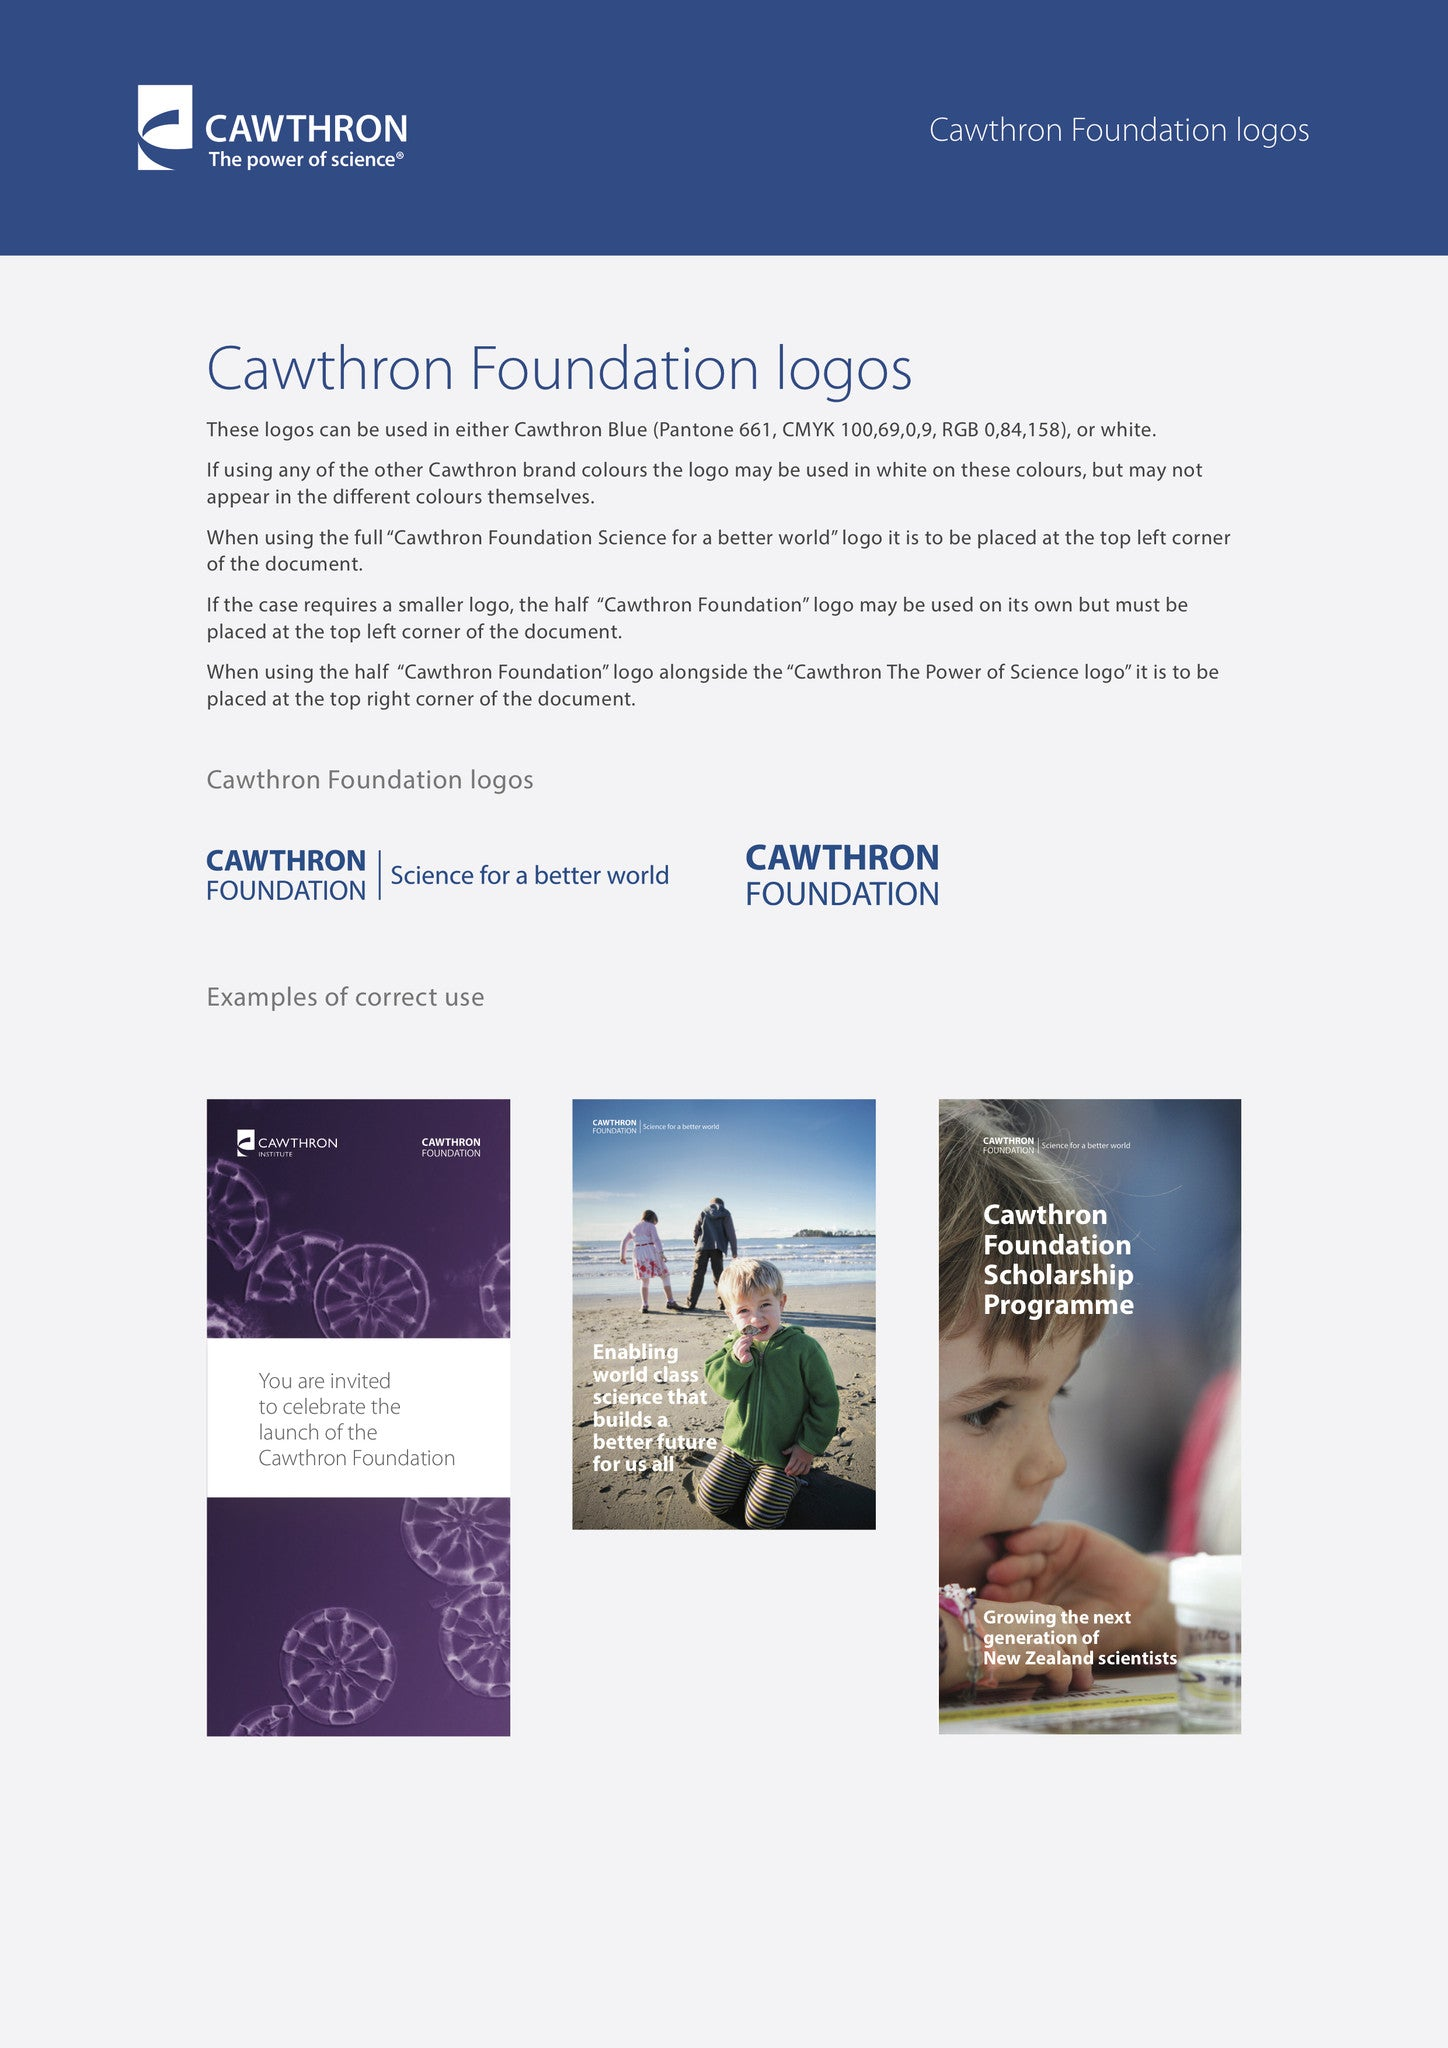 Design of brand guidelines for Cawthron Institute